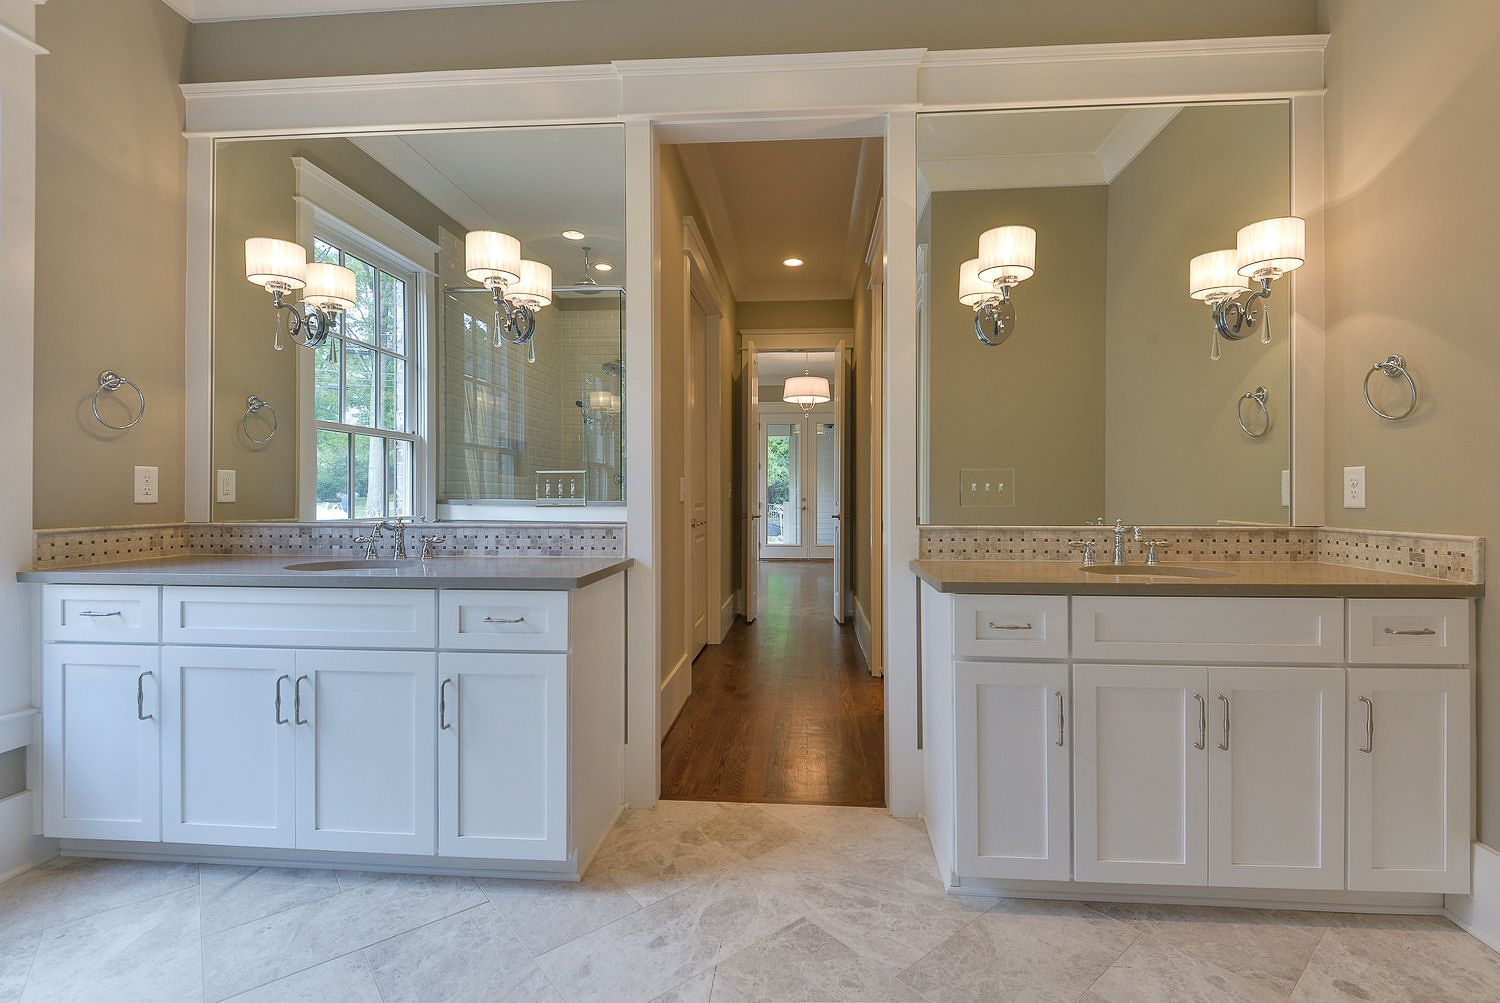 undefined | Quality cabinets, Bath design, Cabinetry